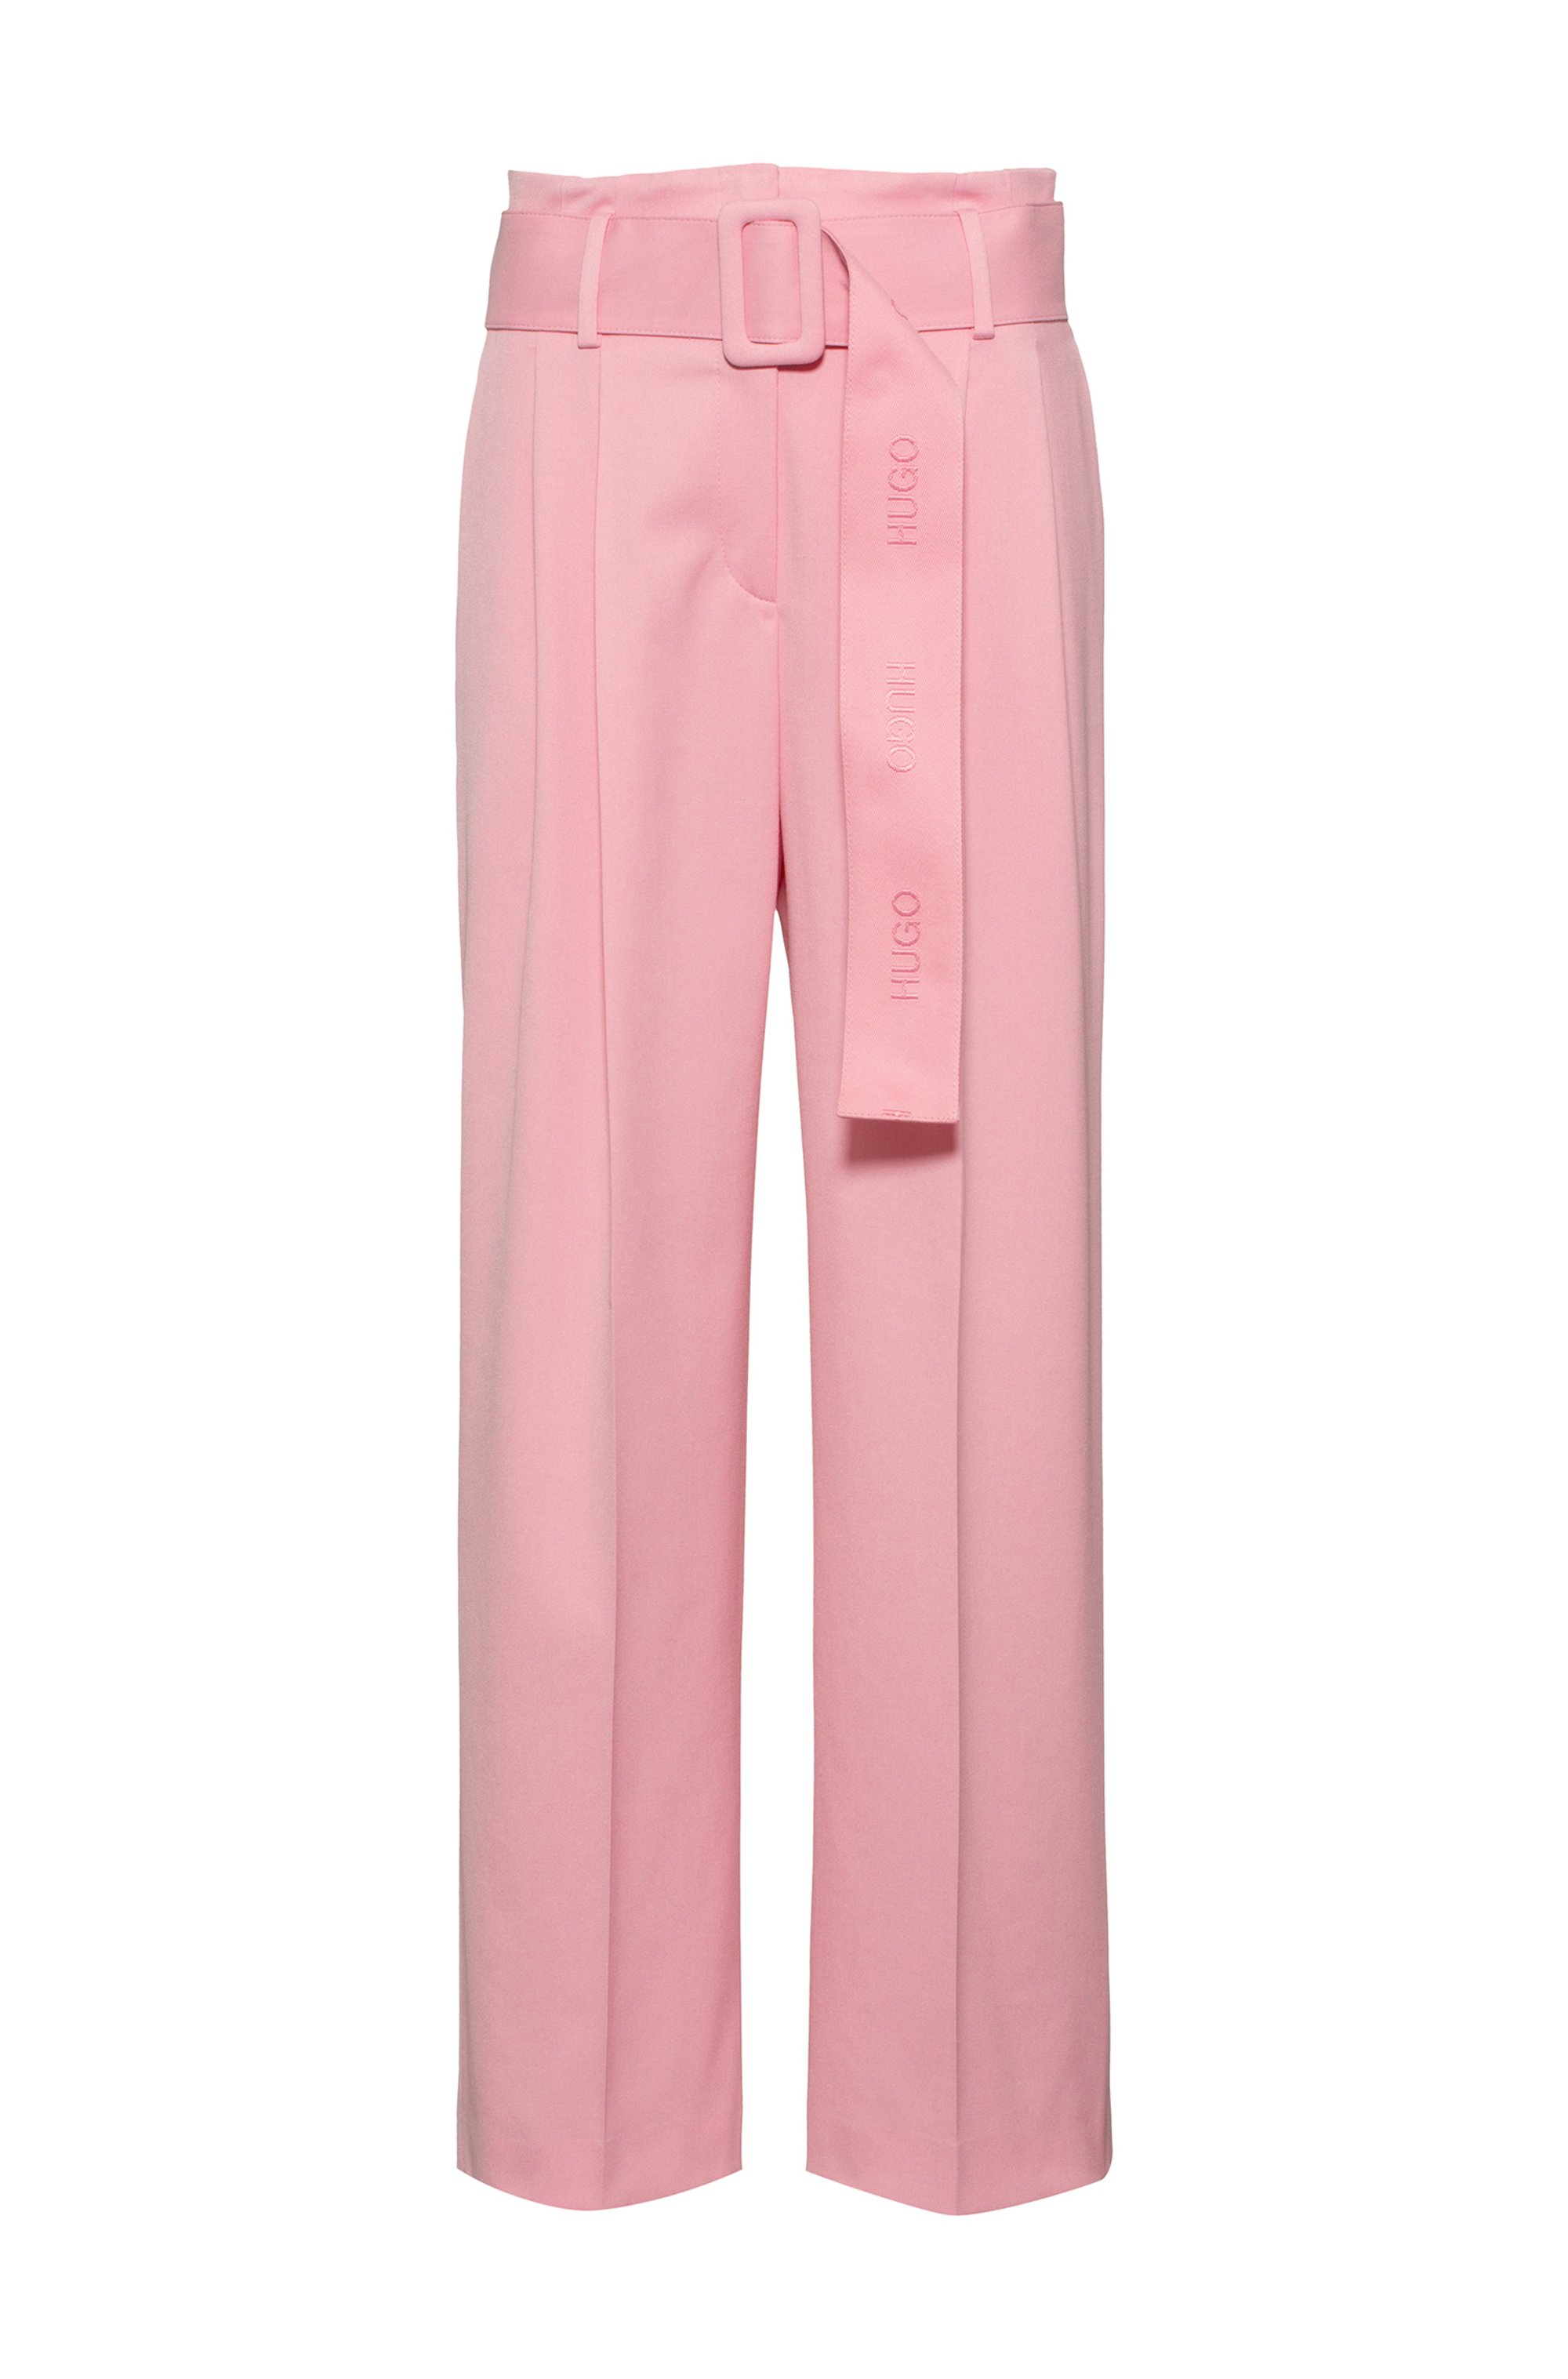 Relaxed-fit trousers in stretch fabric with logo belt, Pink